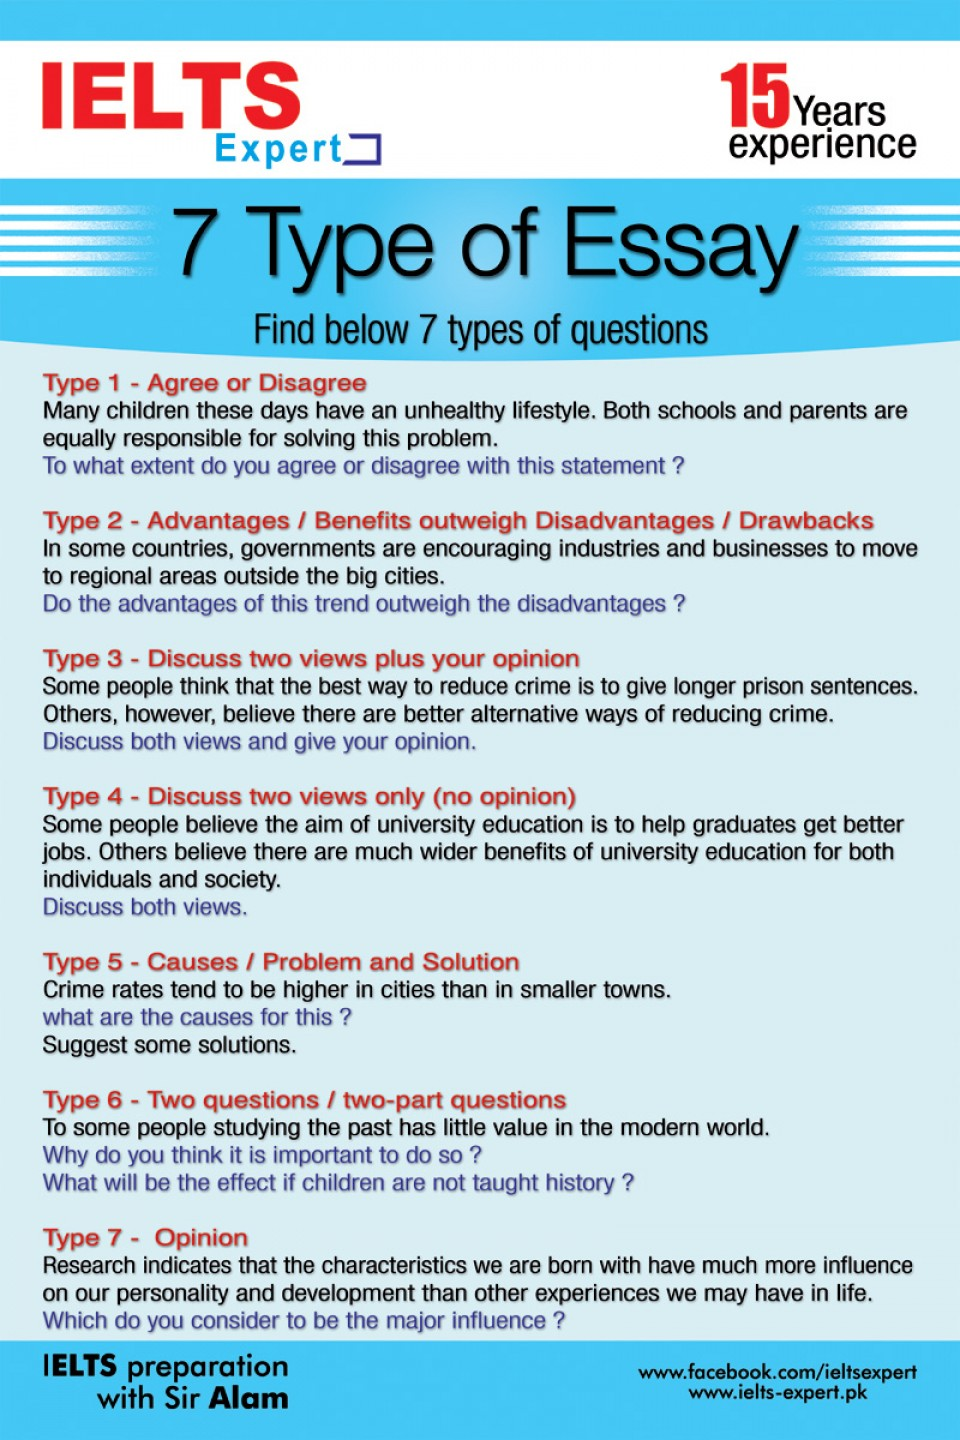 001 Type An Essay Example Of Fantastic Writing Write Question How To On Your Iphone 960